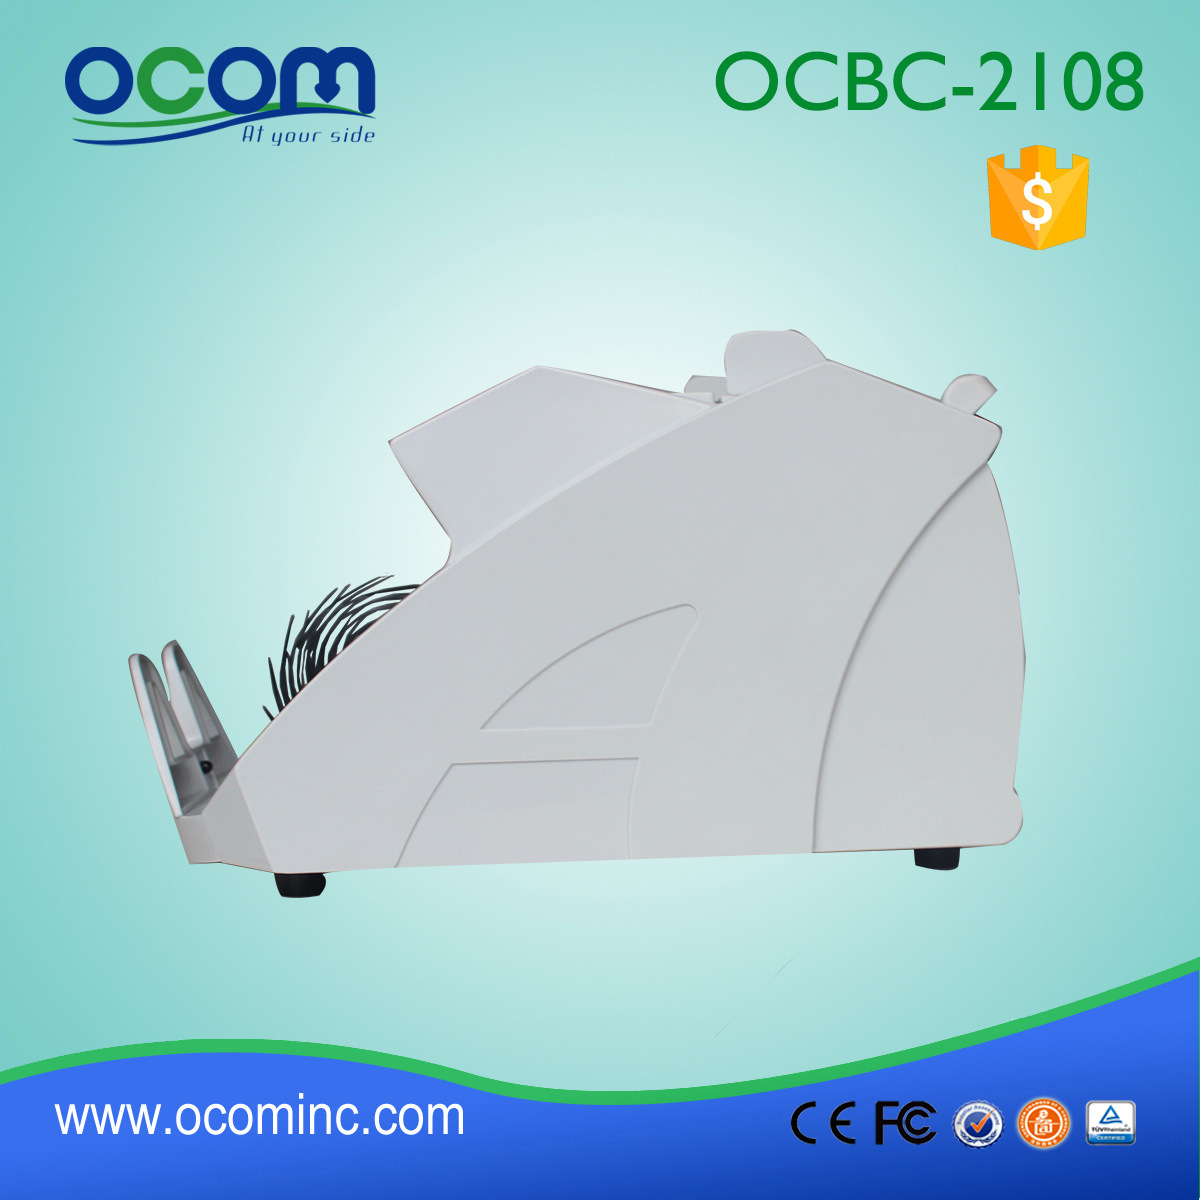 Ocbc-2108 UV+Mg Money Currency Banknote Counter and Decetor